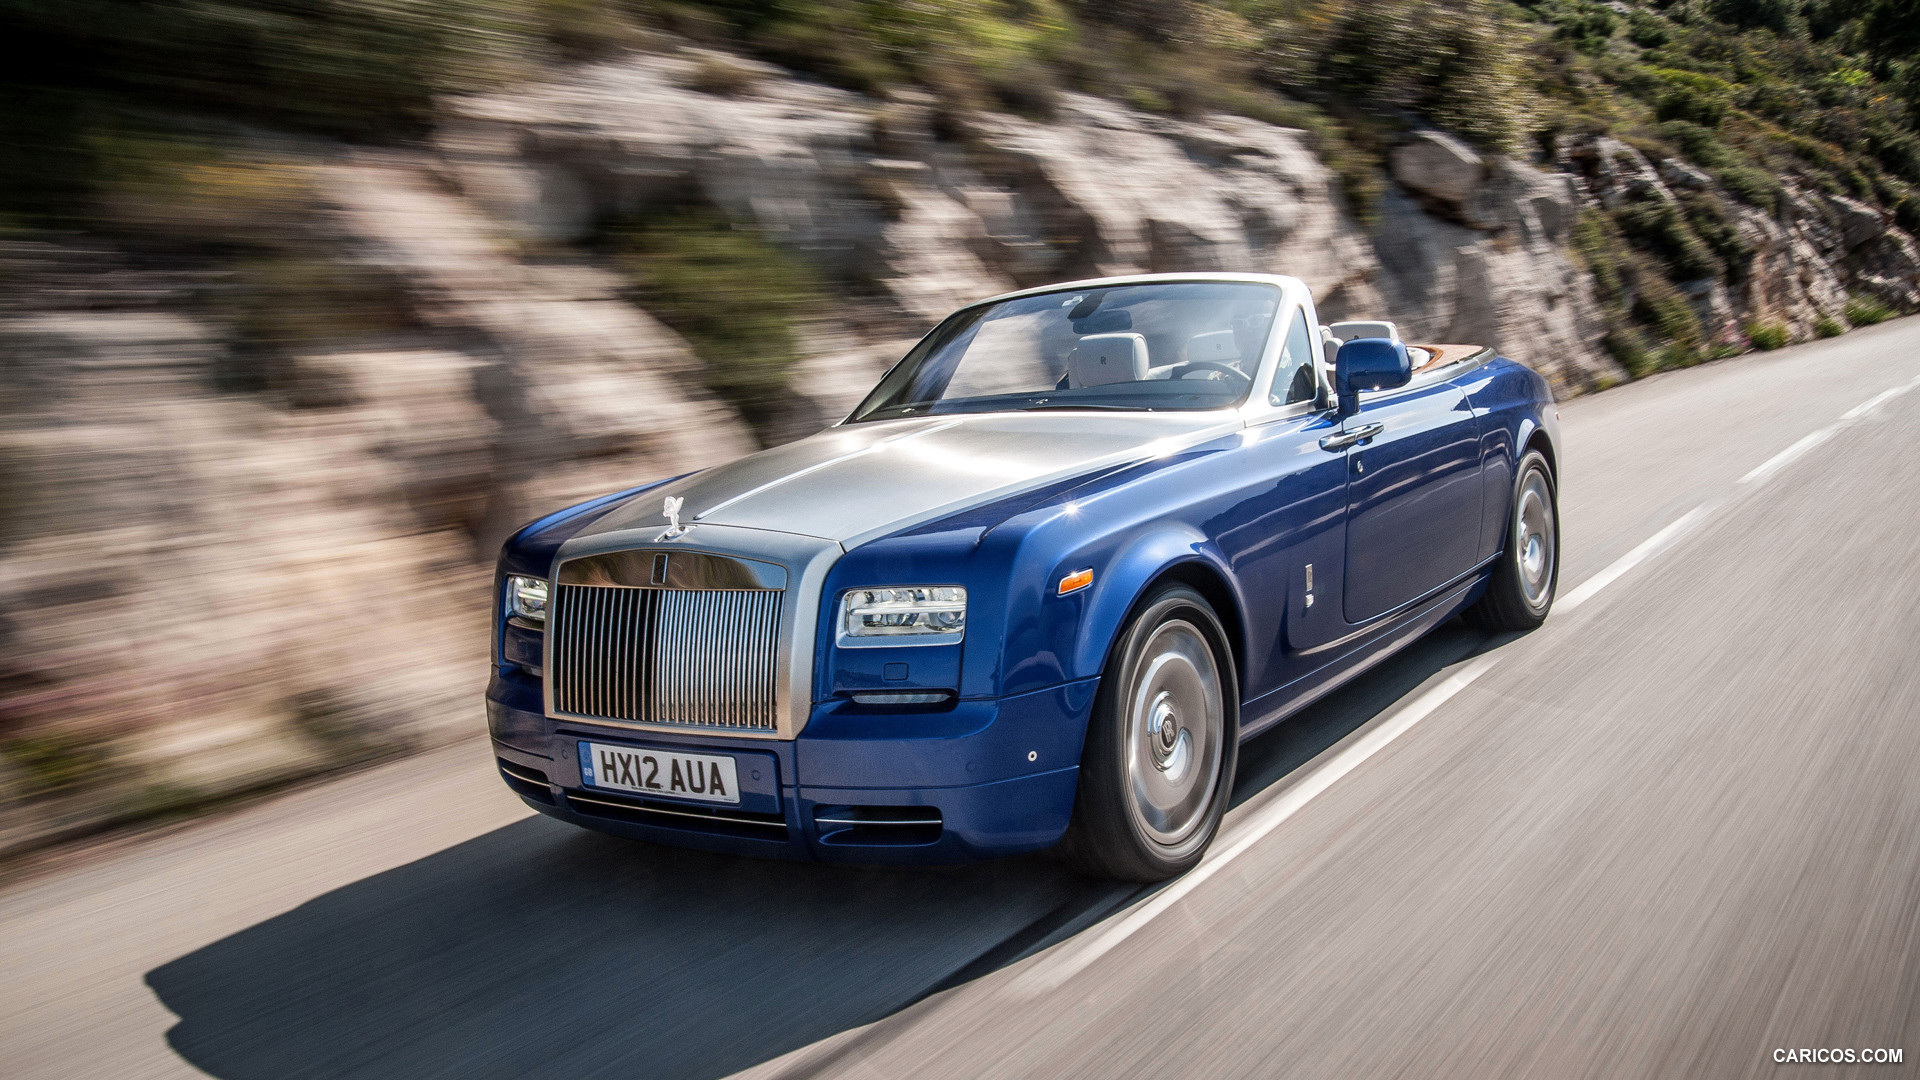 2008 Rolls royce Phantom Drophead Coupe #10